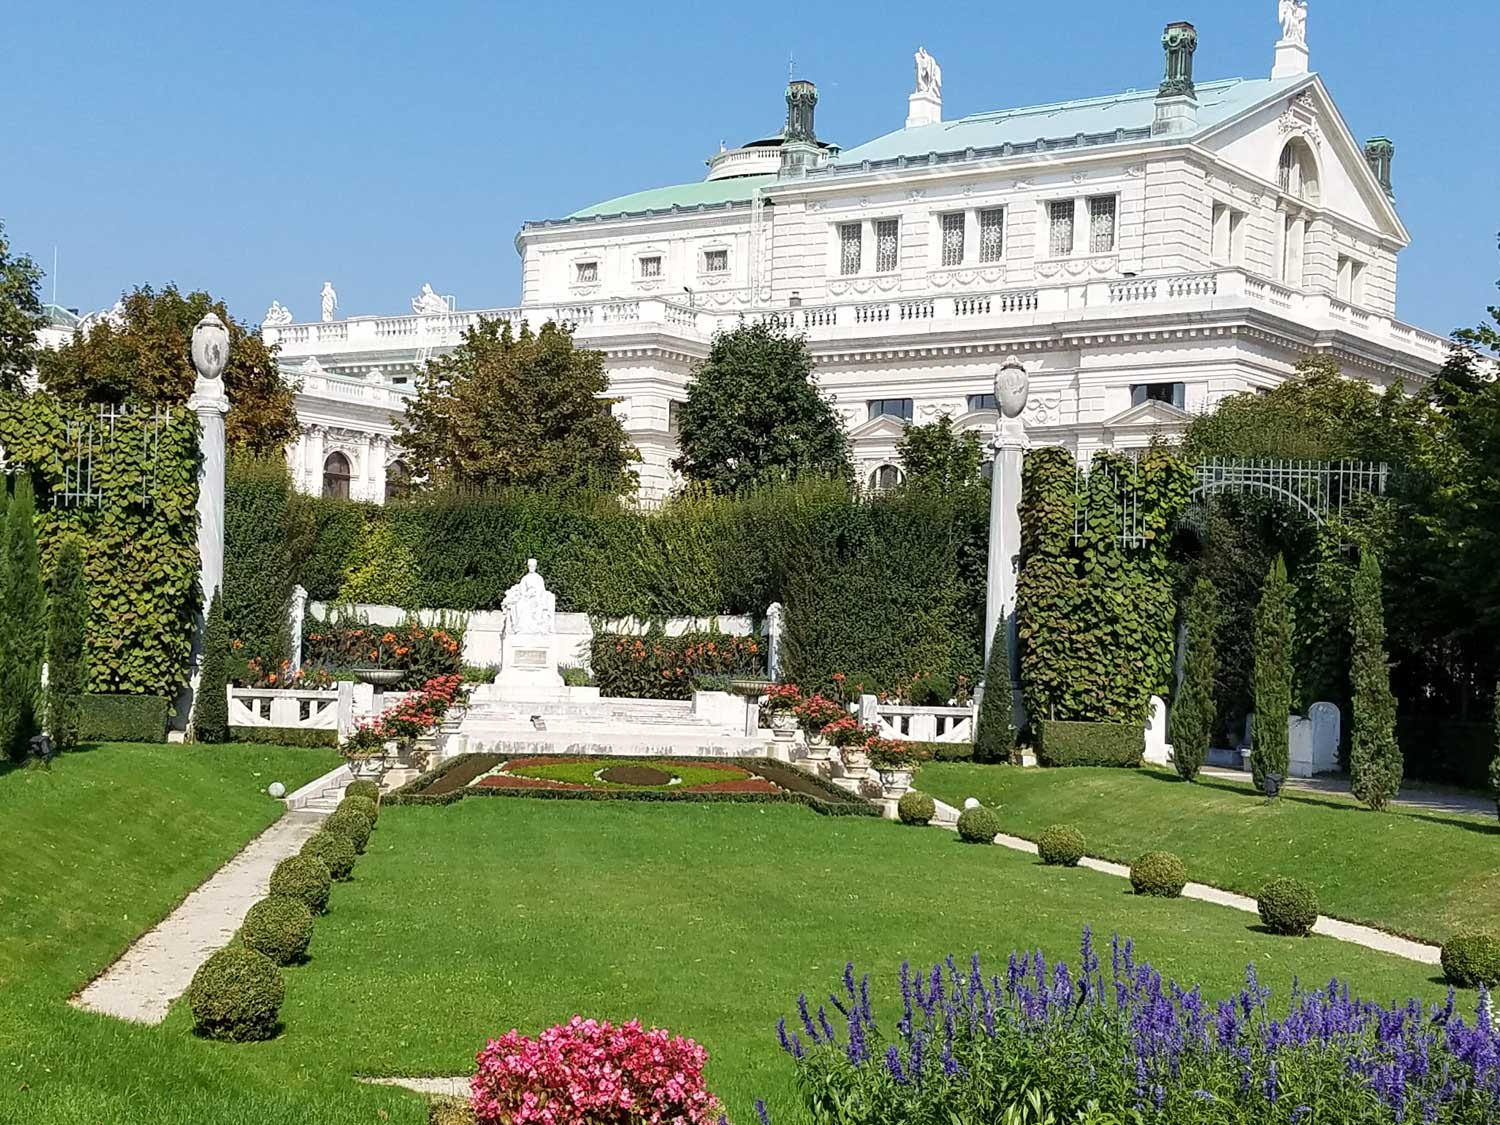 The monument that Franz Joseph built for Queen Sisi in one of the winter palace's many gardens